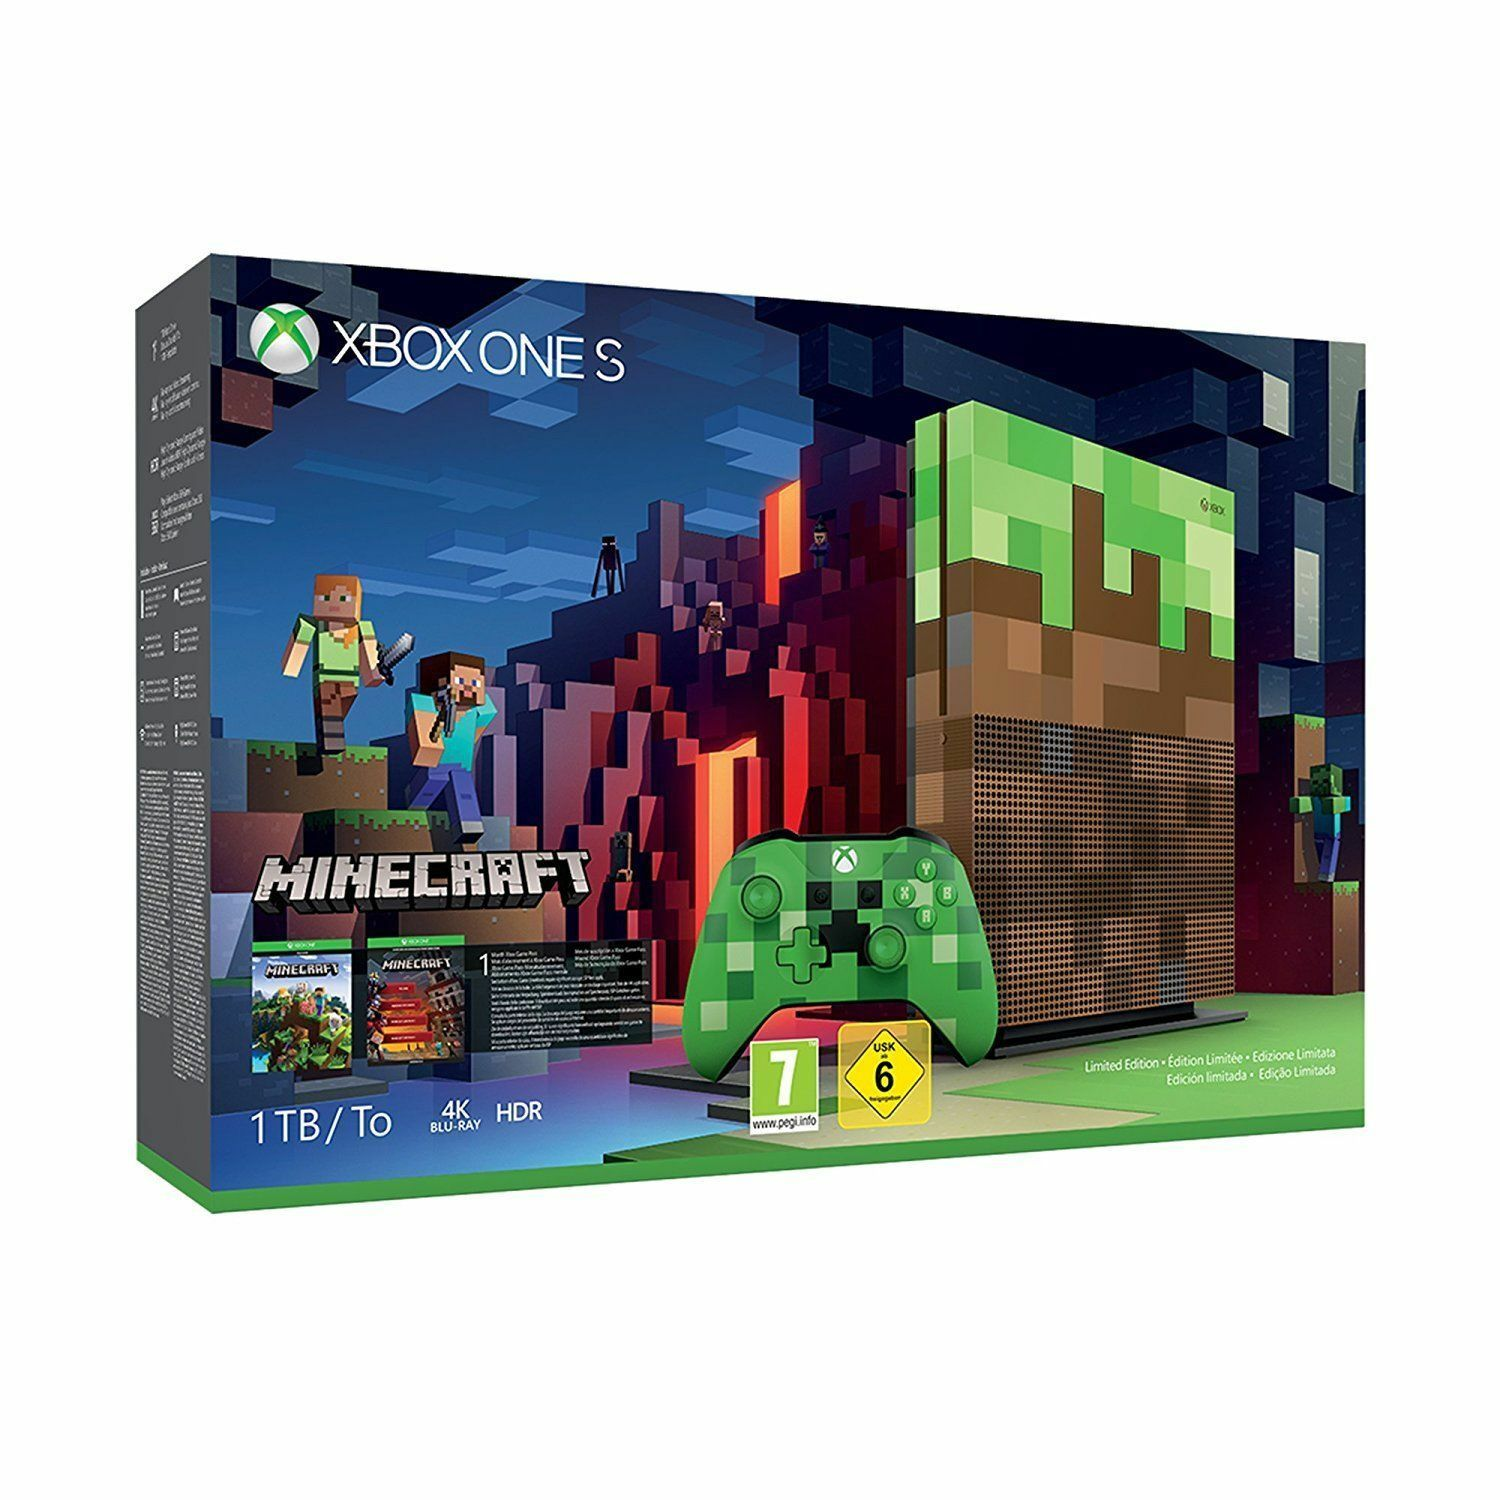 Microsoft Xbox One S Minecraft Bundle 1TB Grün & Braun Konsole Limited Edition